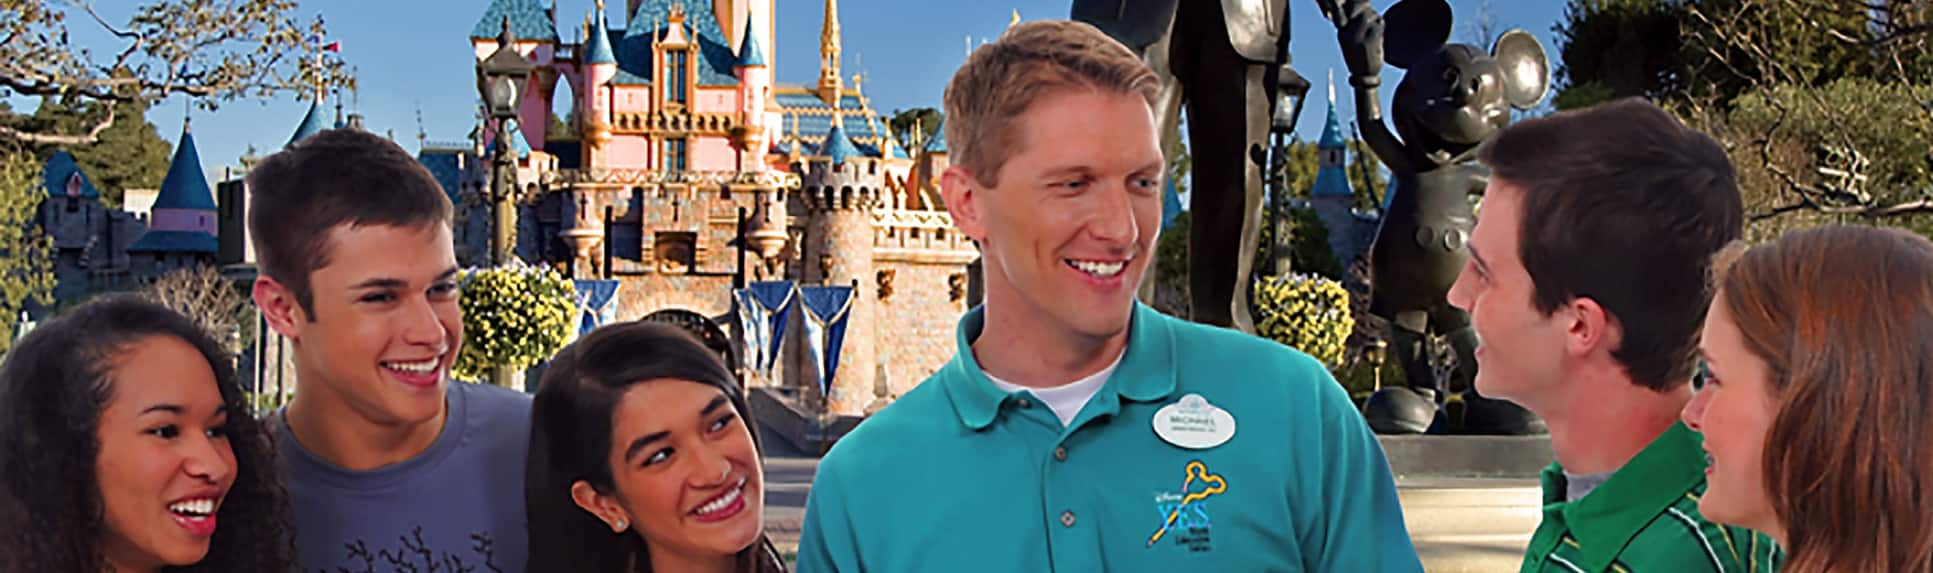 A Cast Member with smiling young adults by the Sleeping Beauty Castle